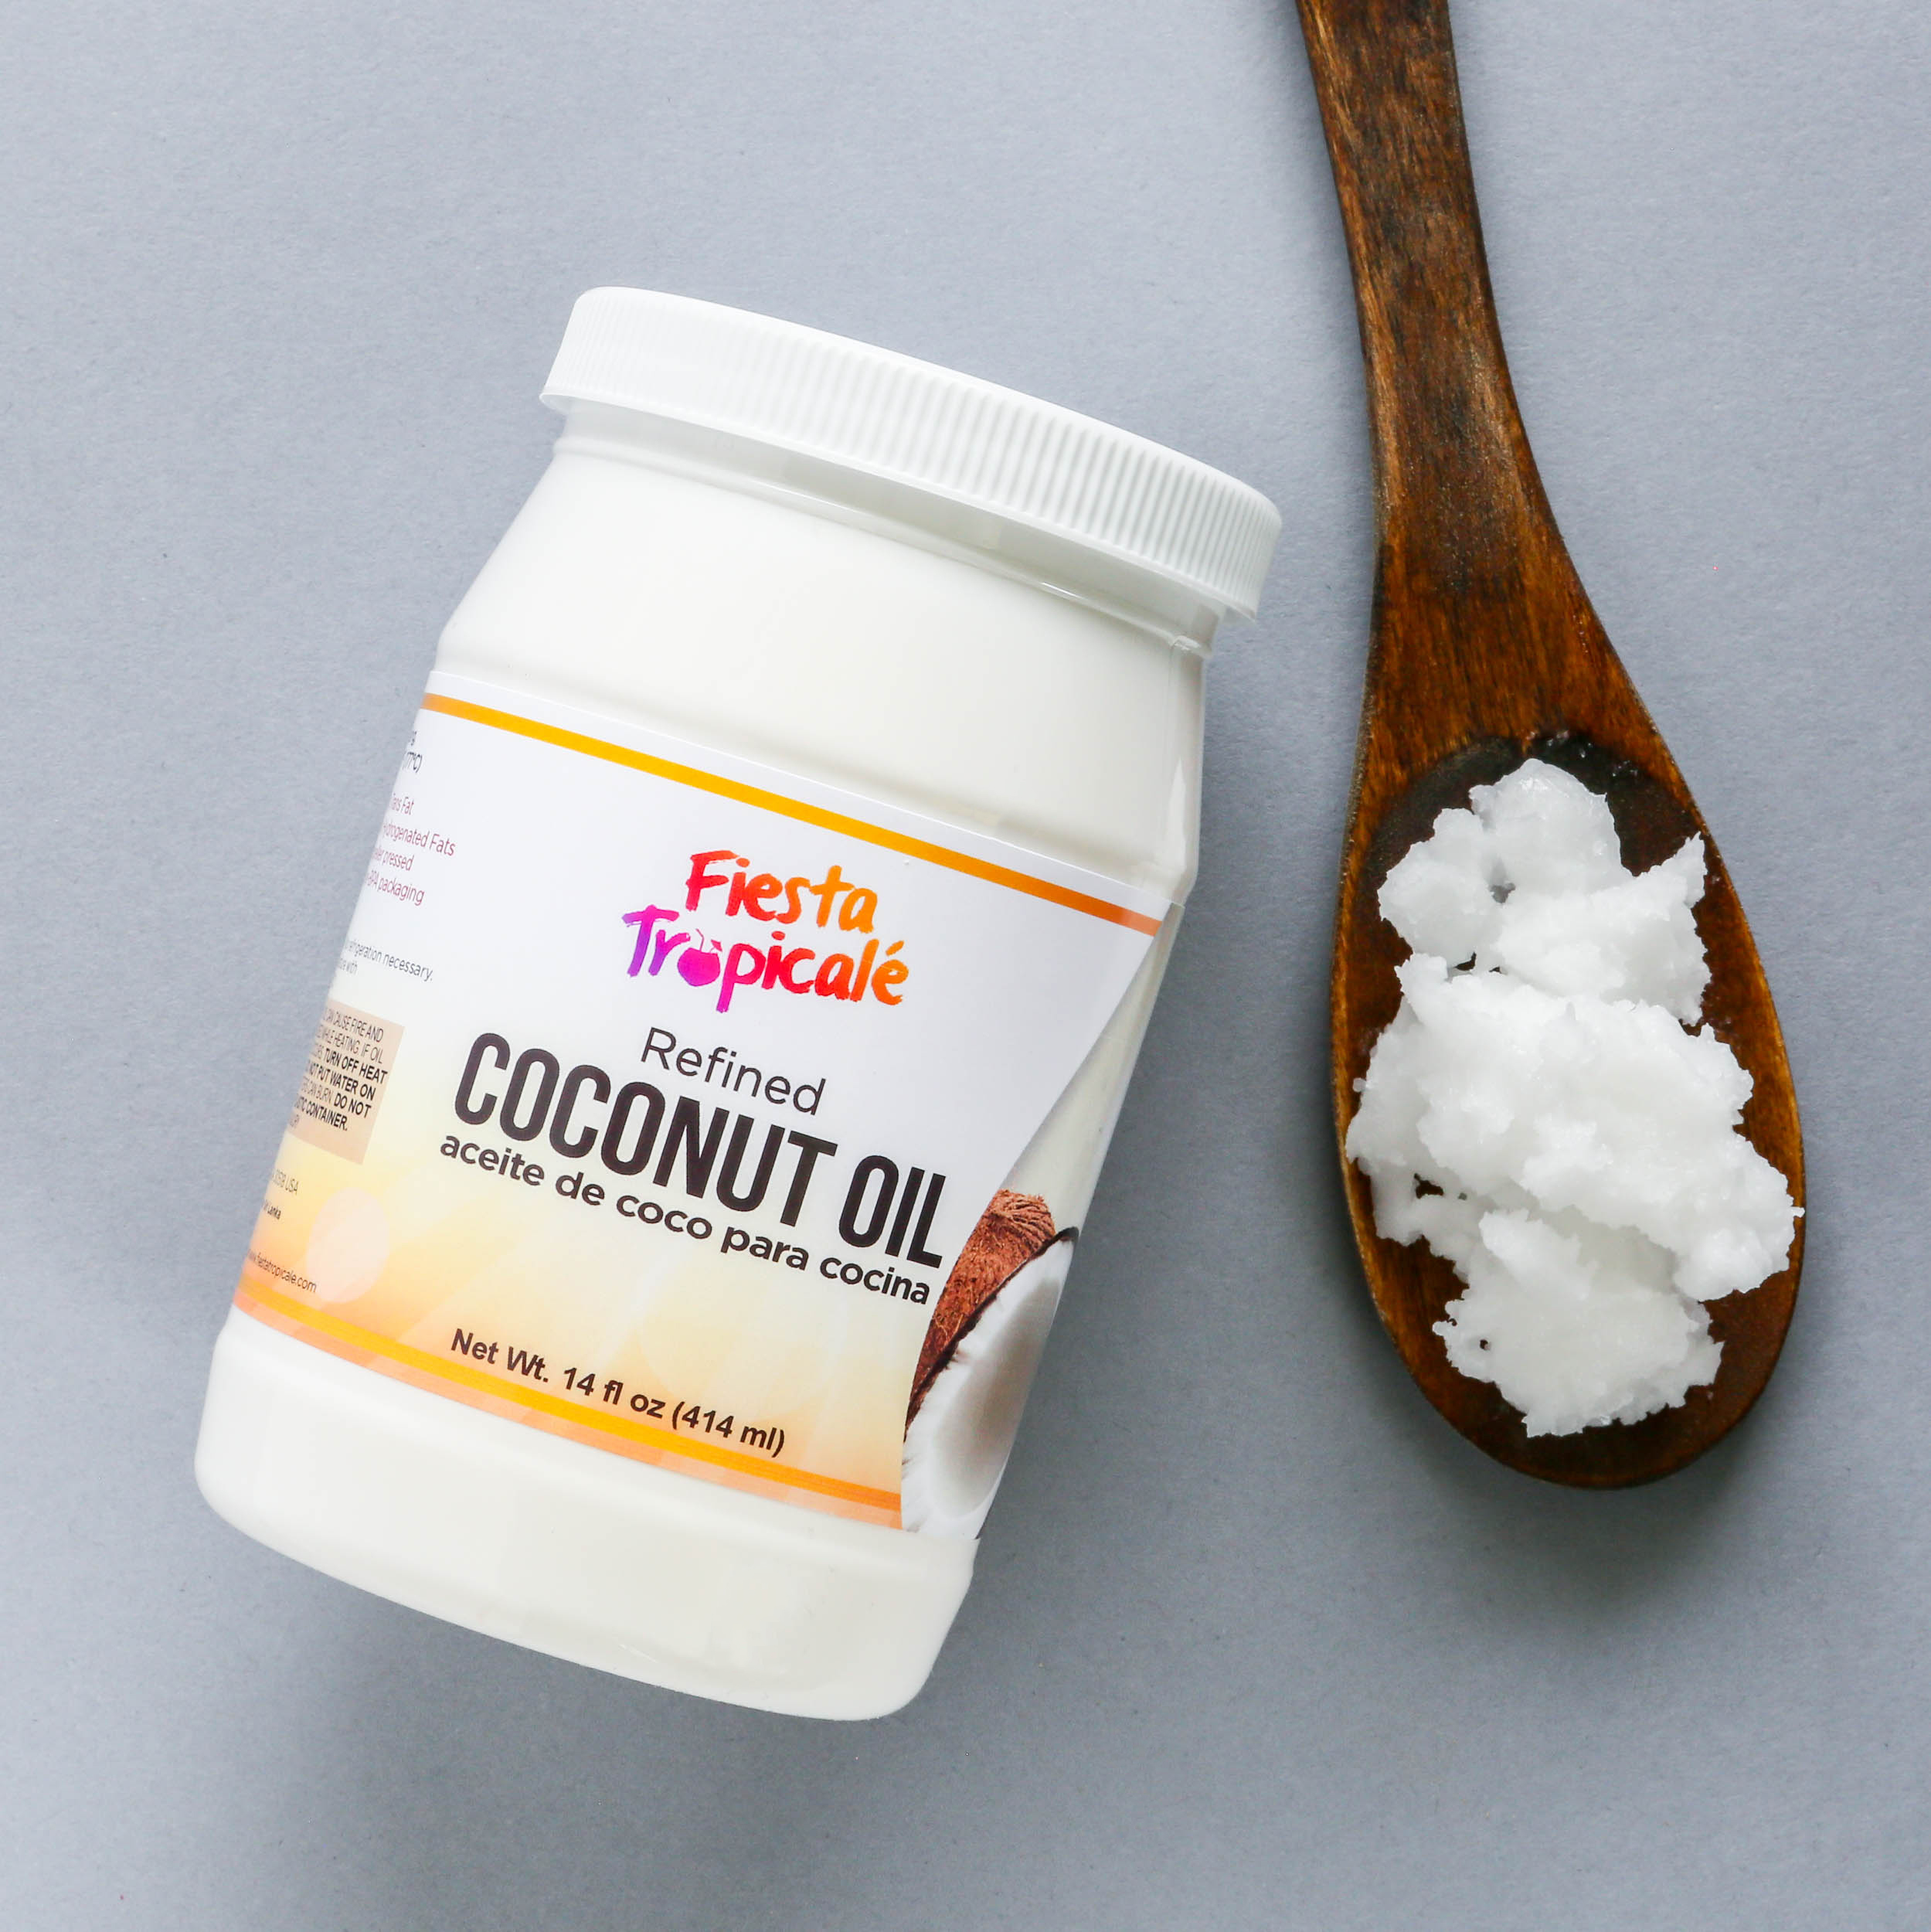 Fiesta Tropicale Refined Coconut Oil Best on Amazon